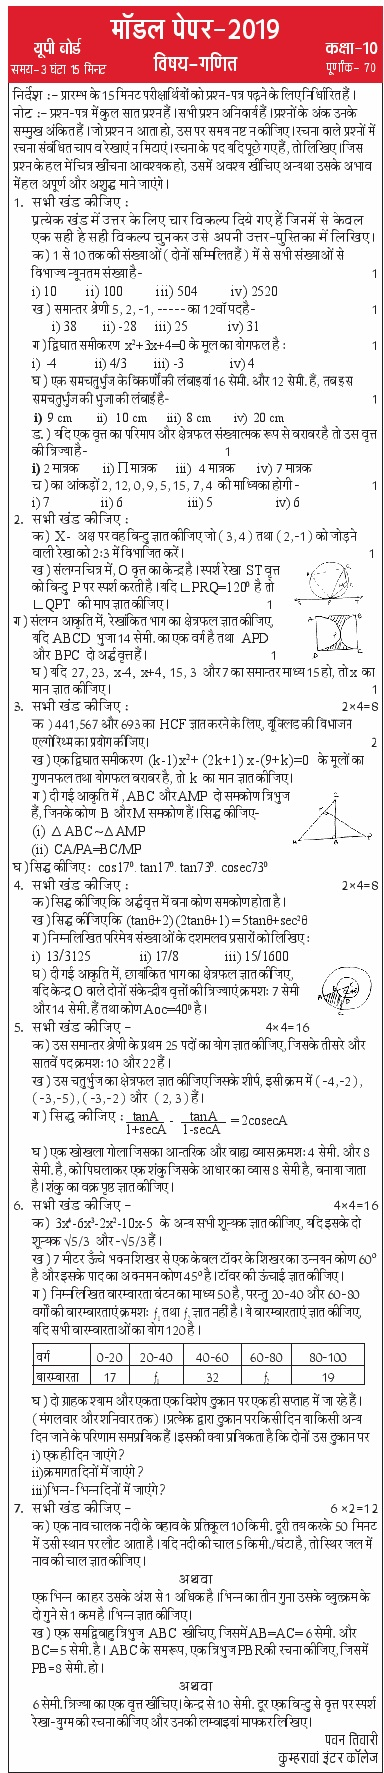 UP Board Model Paper 2020 Class 10th 12th Practice Papers